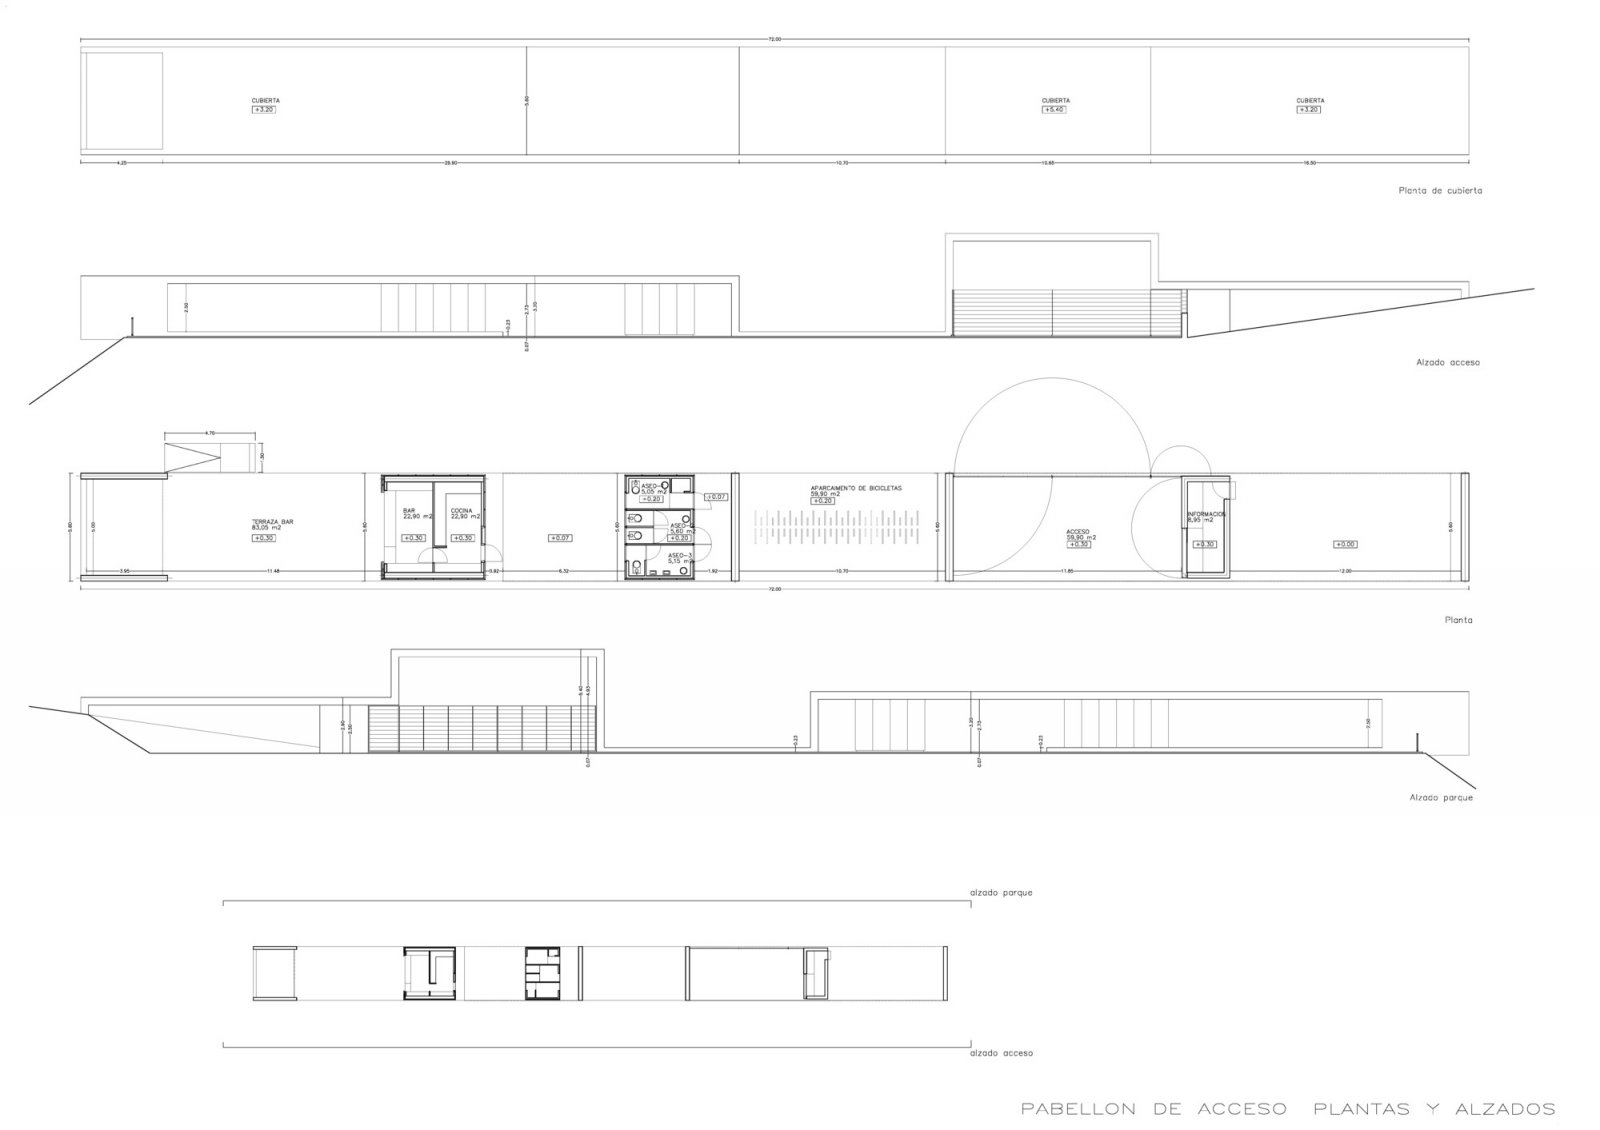 Pavilion/Plans/Elevations